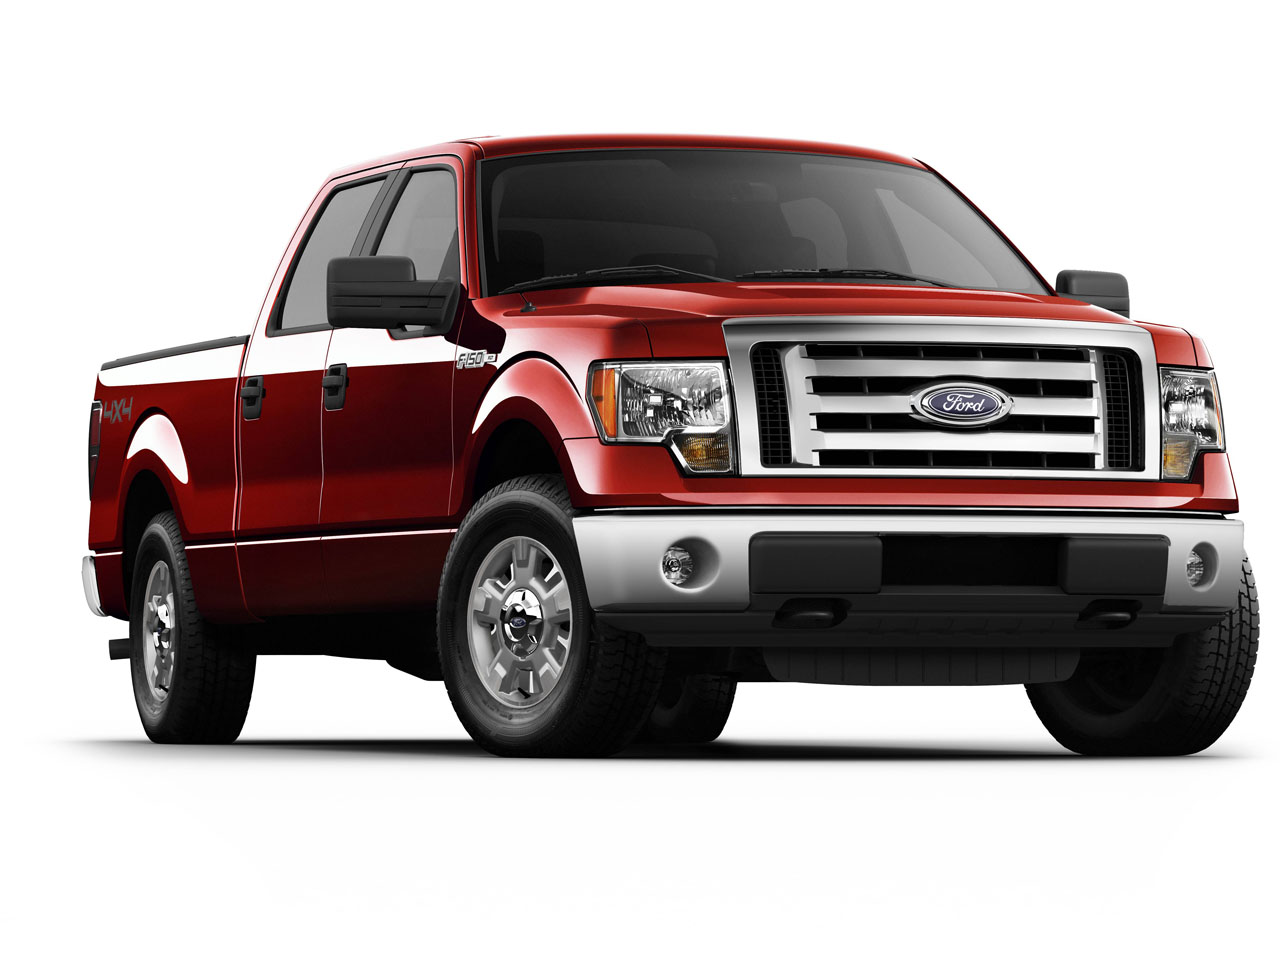 Colorado Springs Toyota >> 2011 Ford F-150 Buyer's Guide: Which Truck Is For Me?